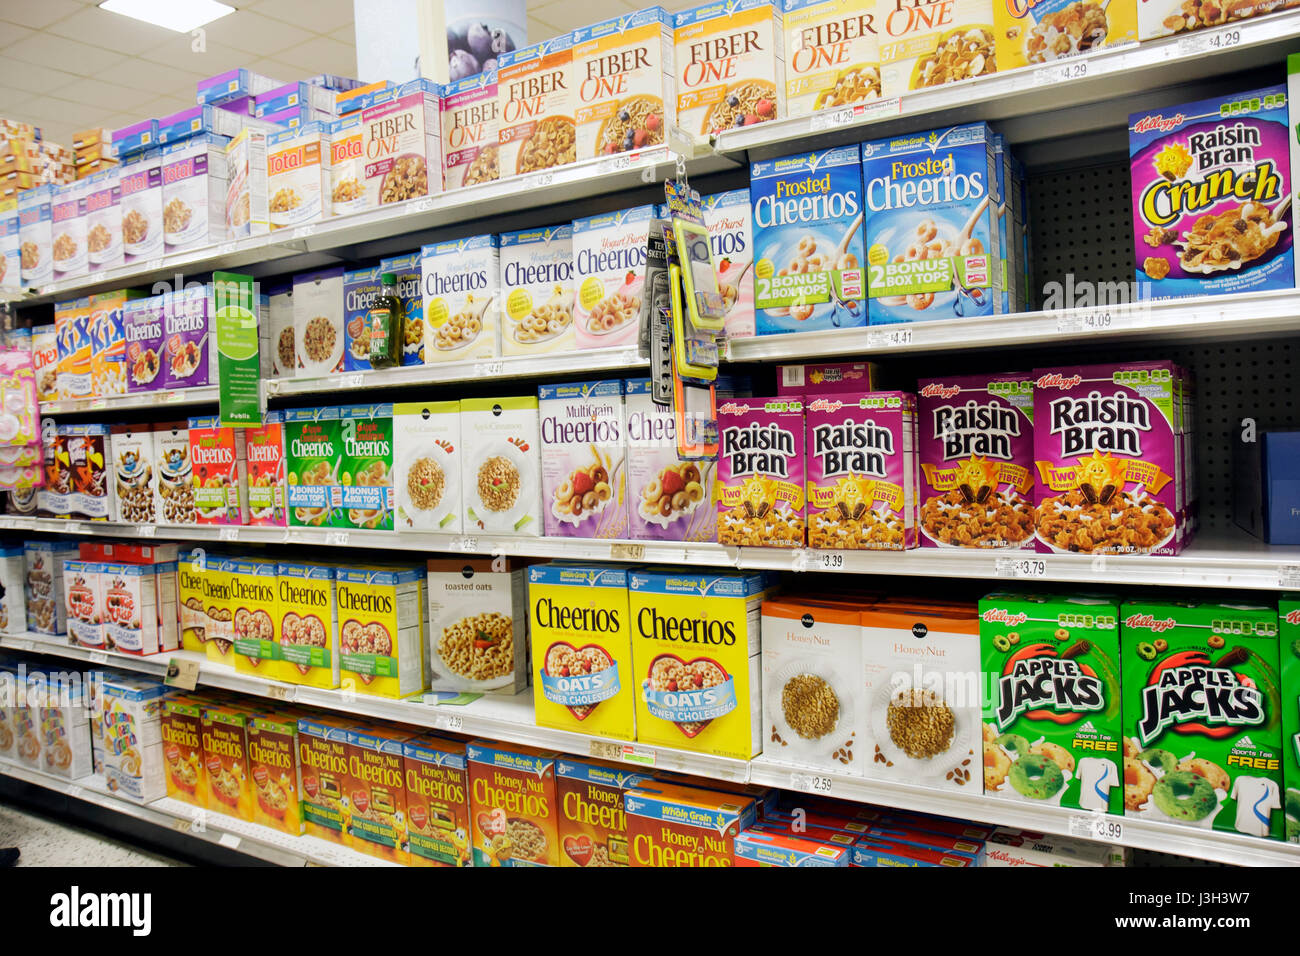 Miami Beach Florida Publix Grocery Store shelves display packaging food variety cereal grains Kellogg's Post - Stock Image